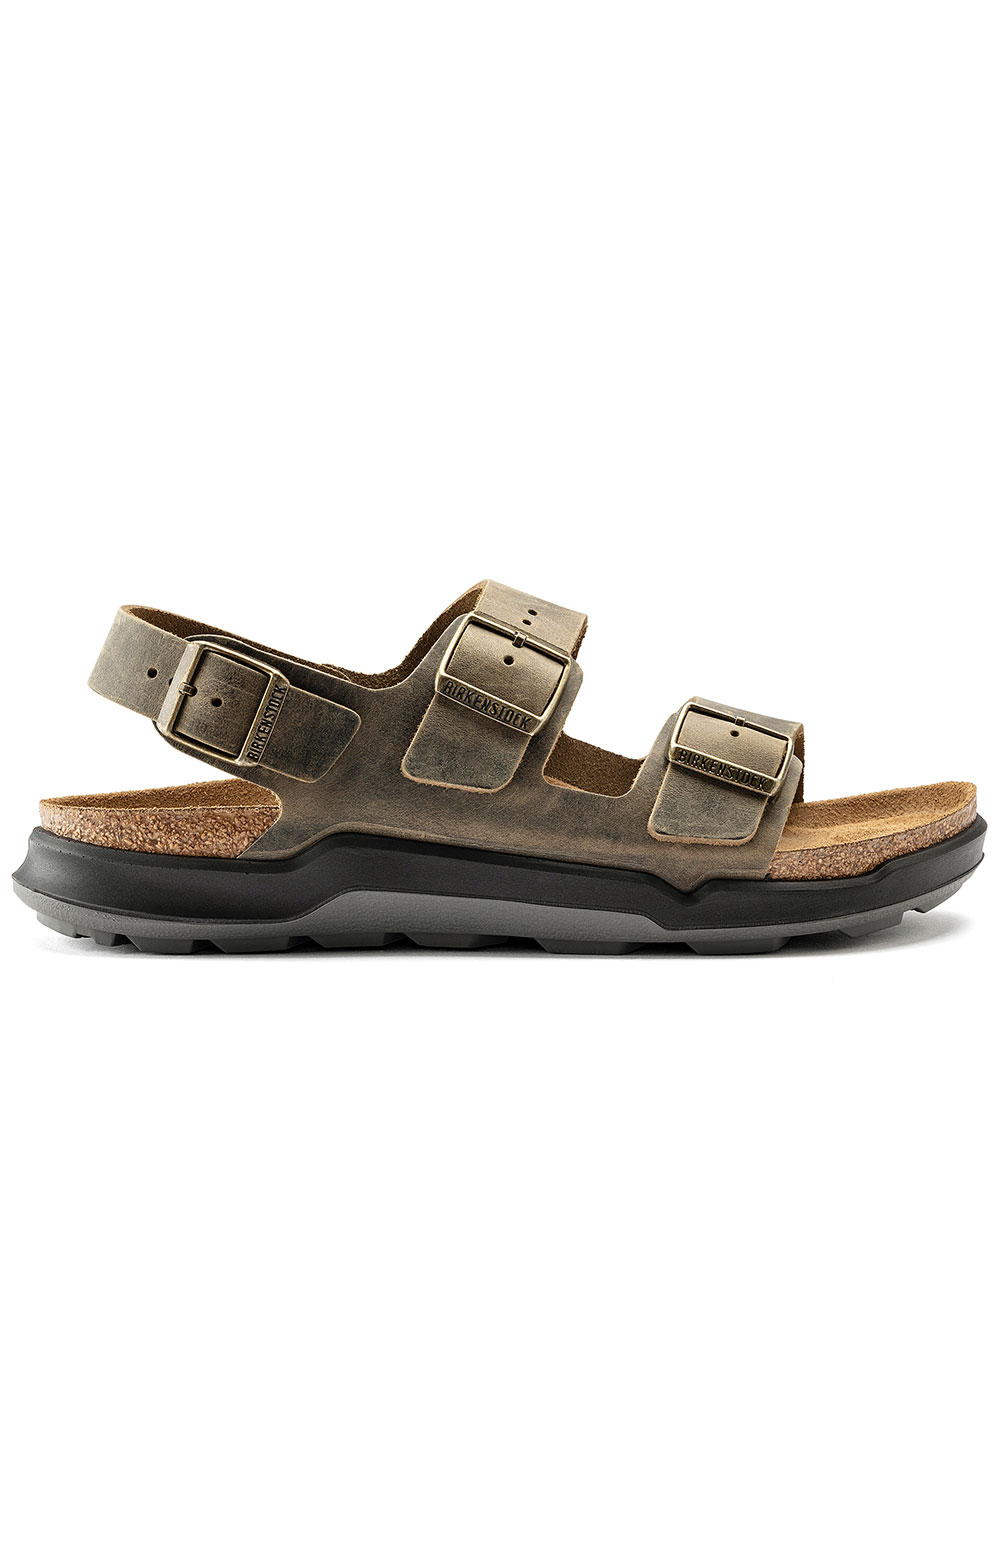 (1018427) Milano Cross Town Sandals - Faded Khaki 3